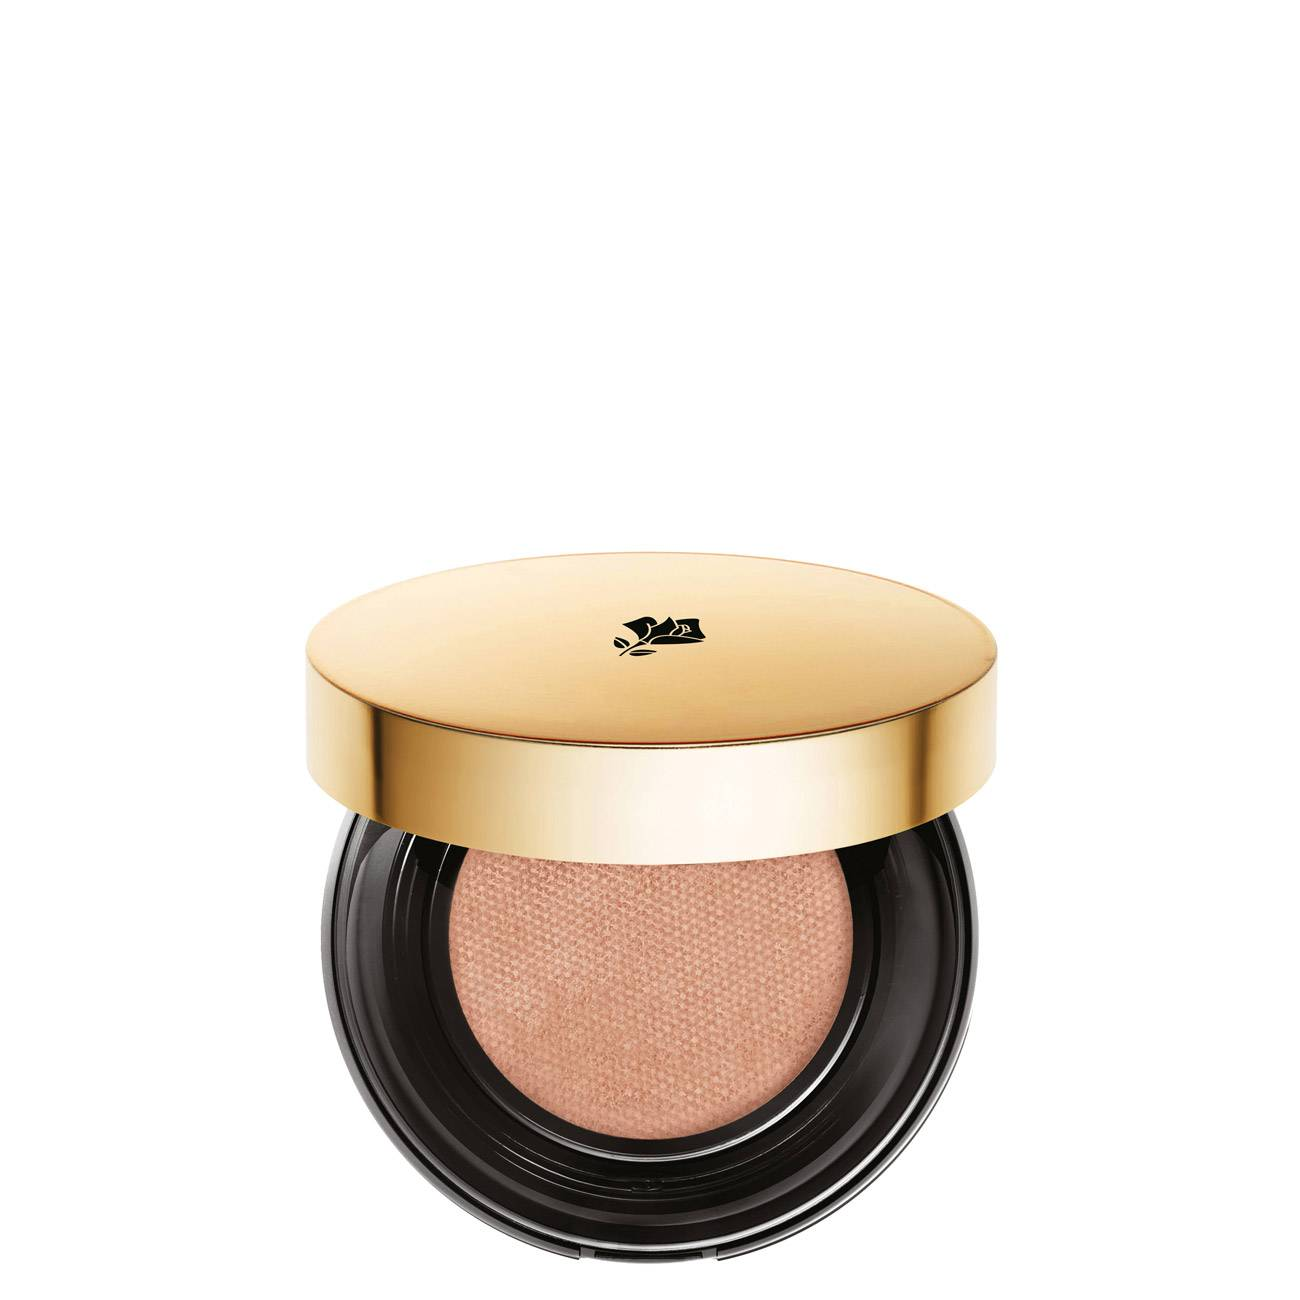 Teint Idole Cushion 13 G Beige Miel 4 Lancôme imagine 2021 bestvalue.eu